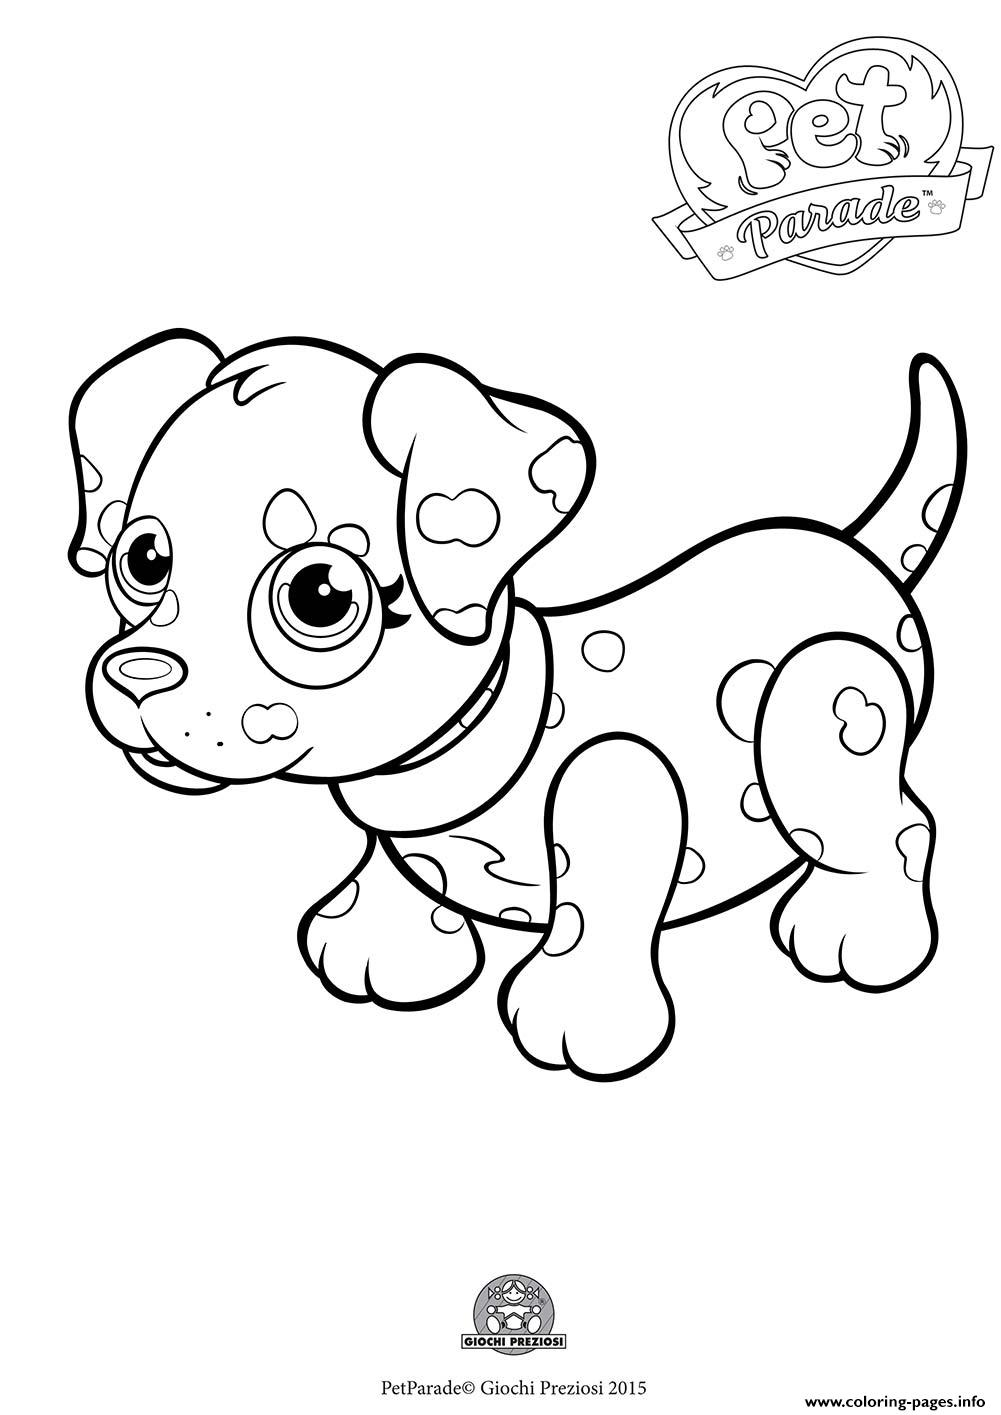 Fire Dog Coloring Page At Getdrawings Com Free For Personal Use